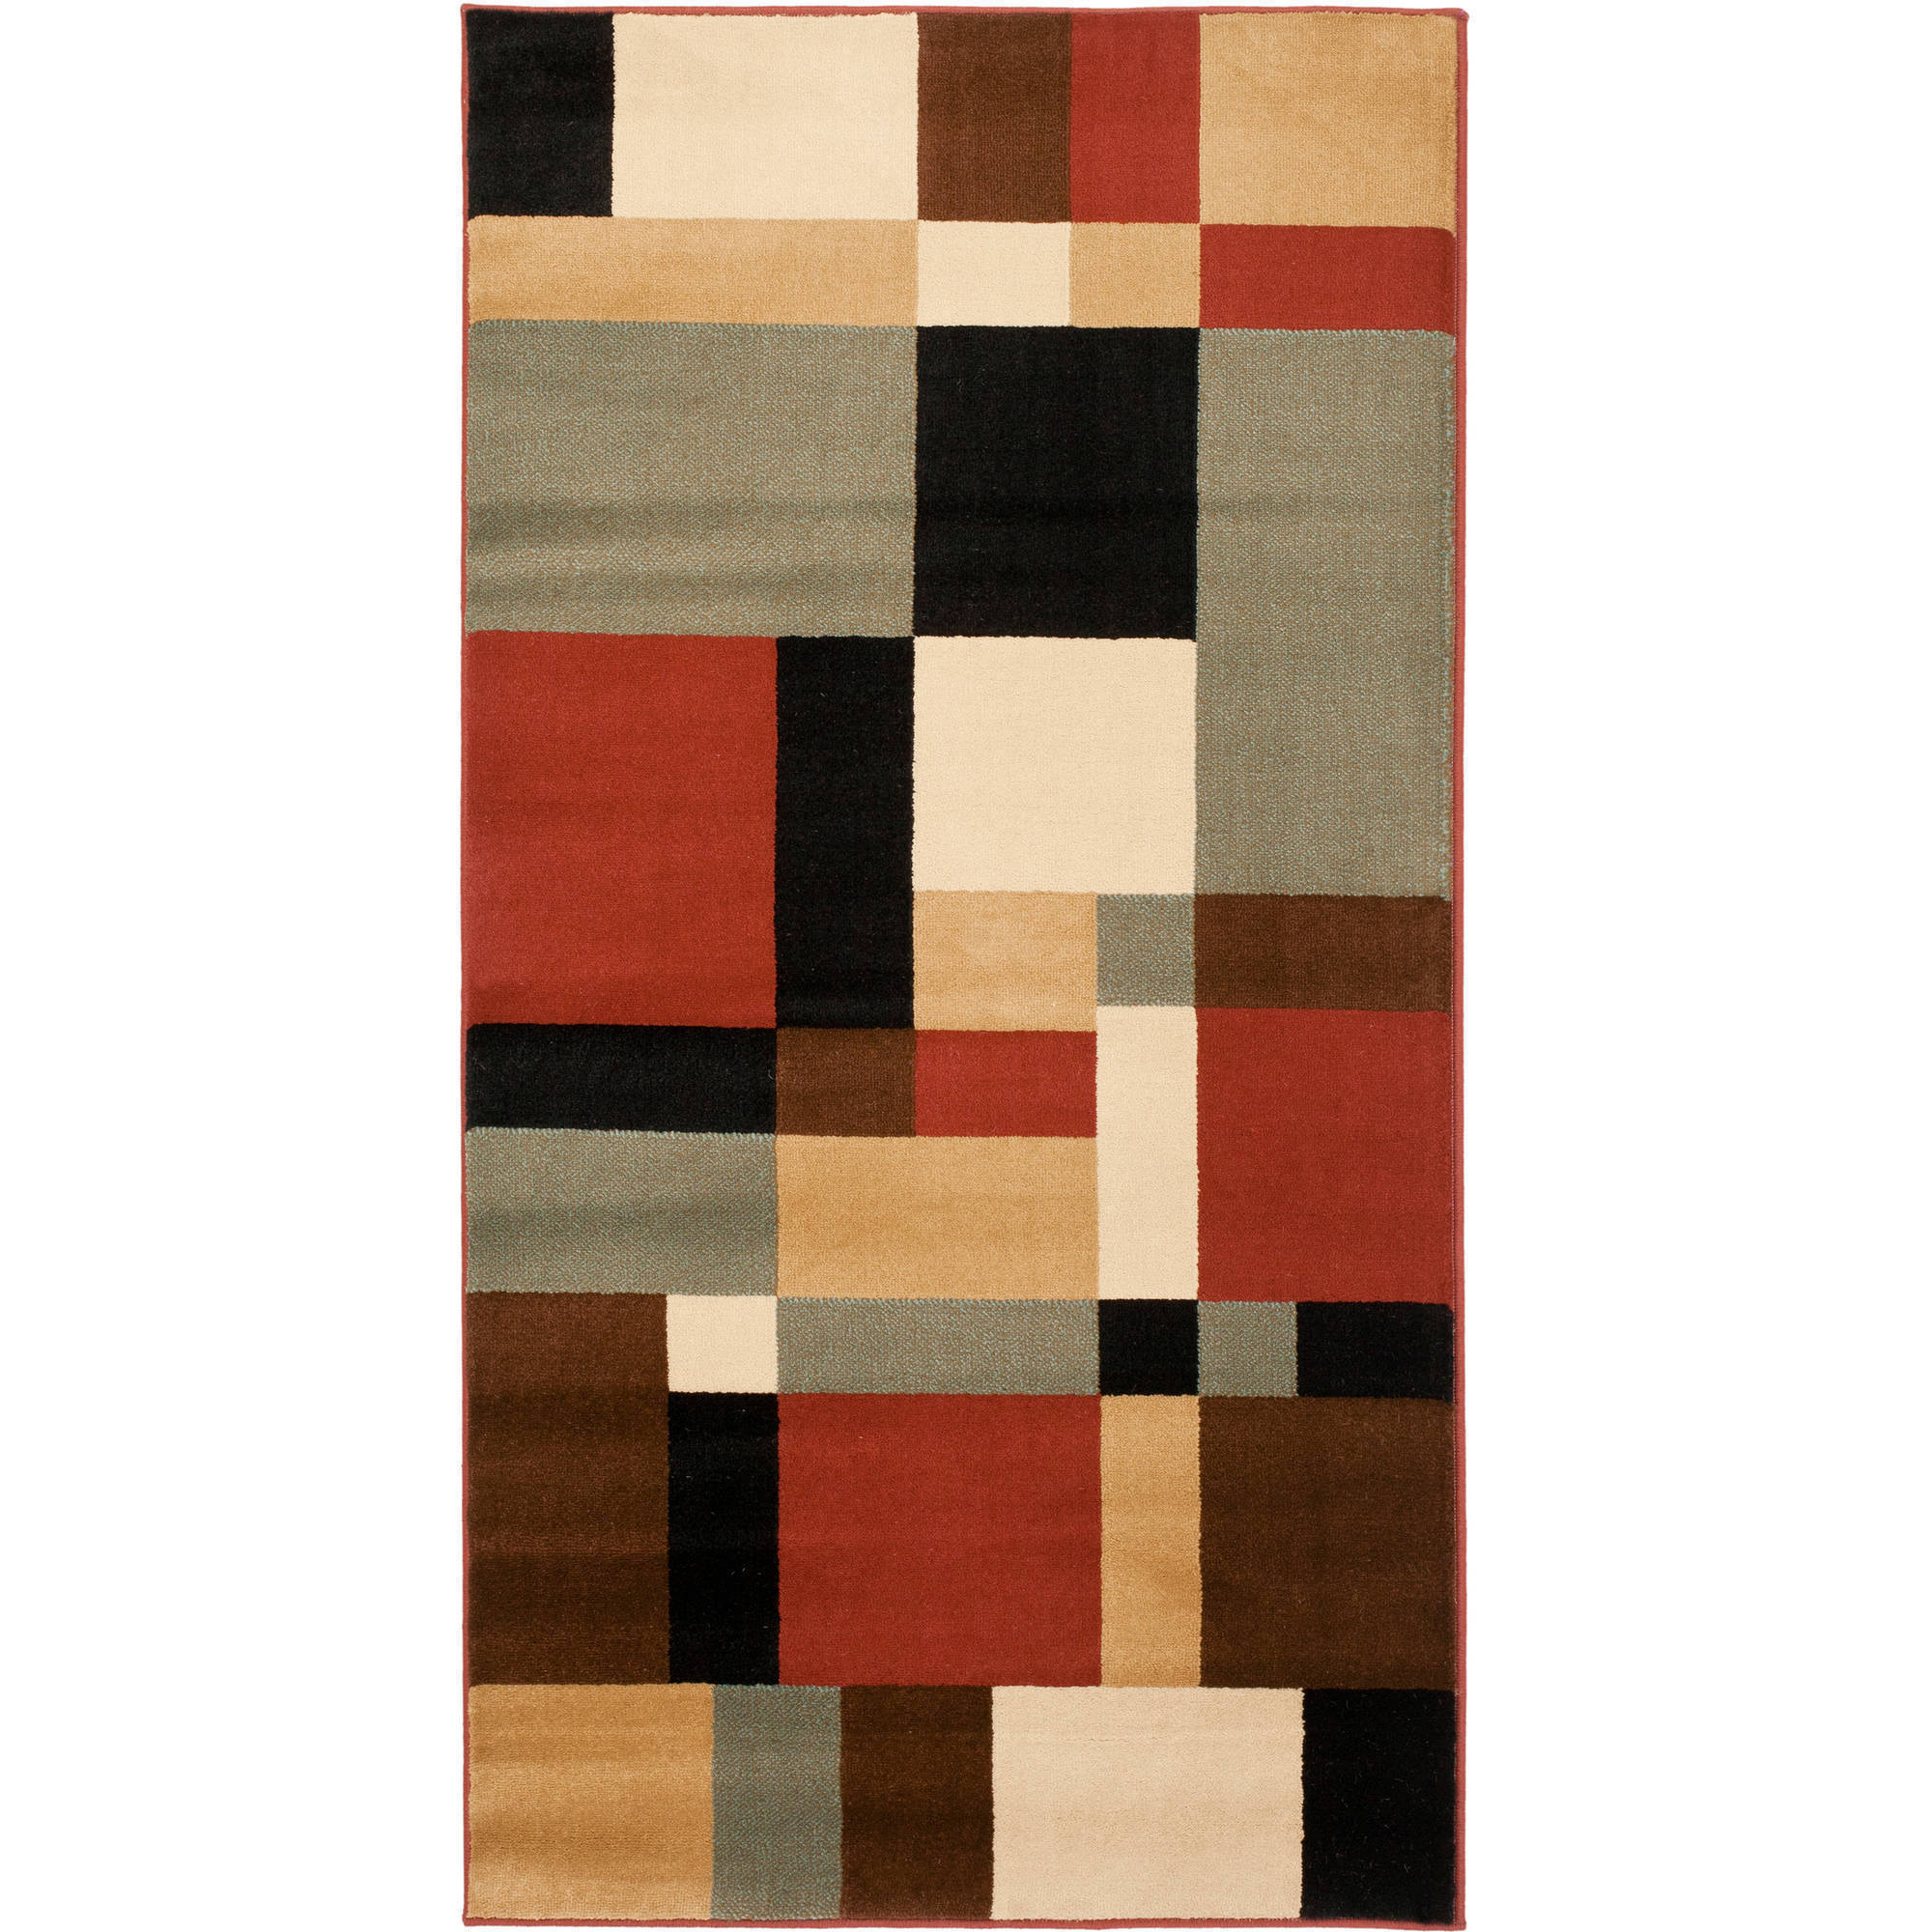 Safavieh Porcello Moderno Abstract Area Rug or Runner by Safavieh